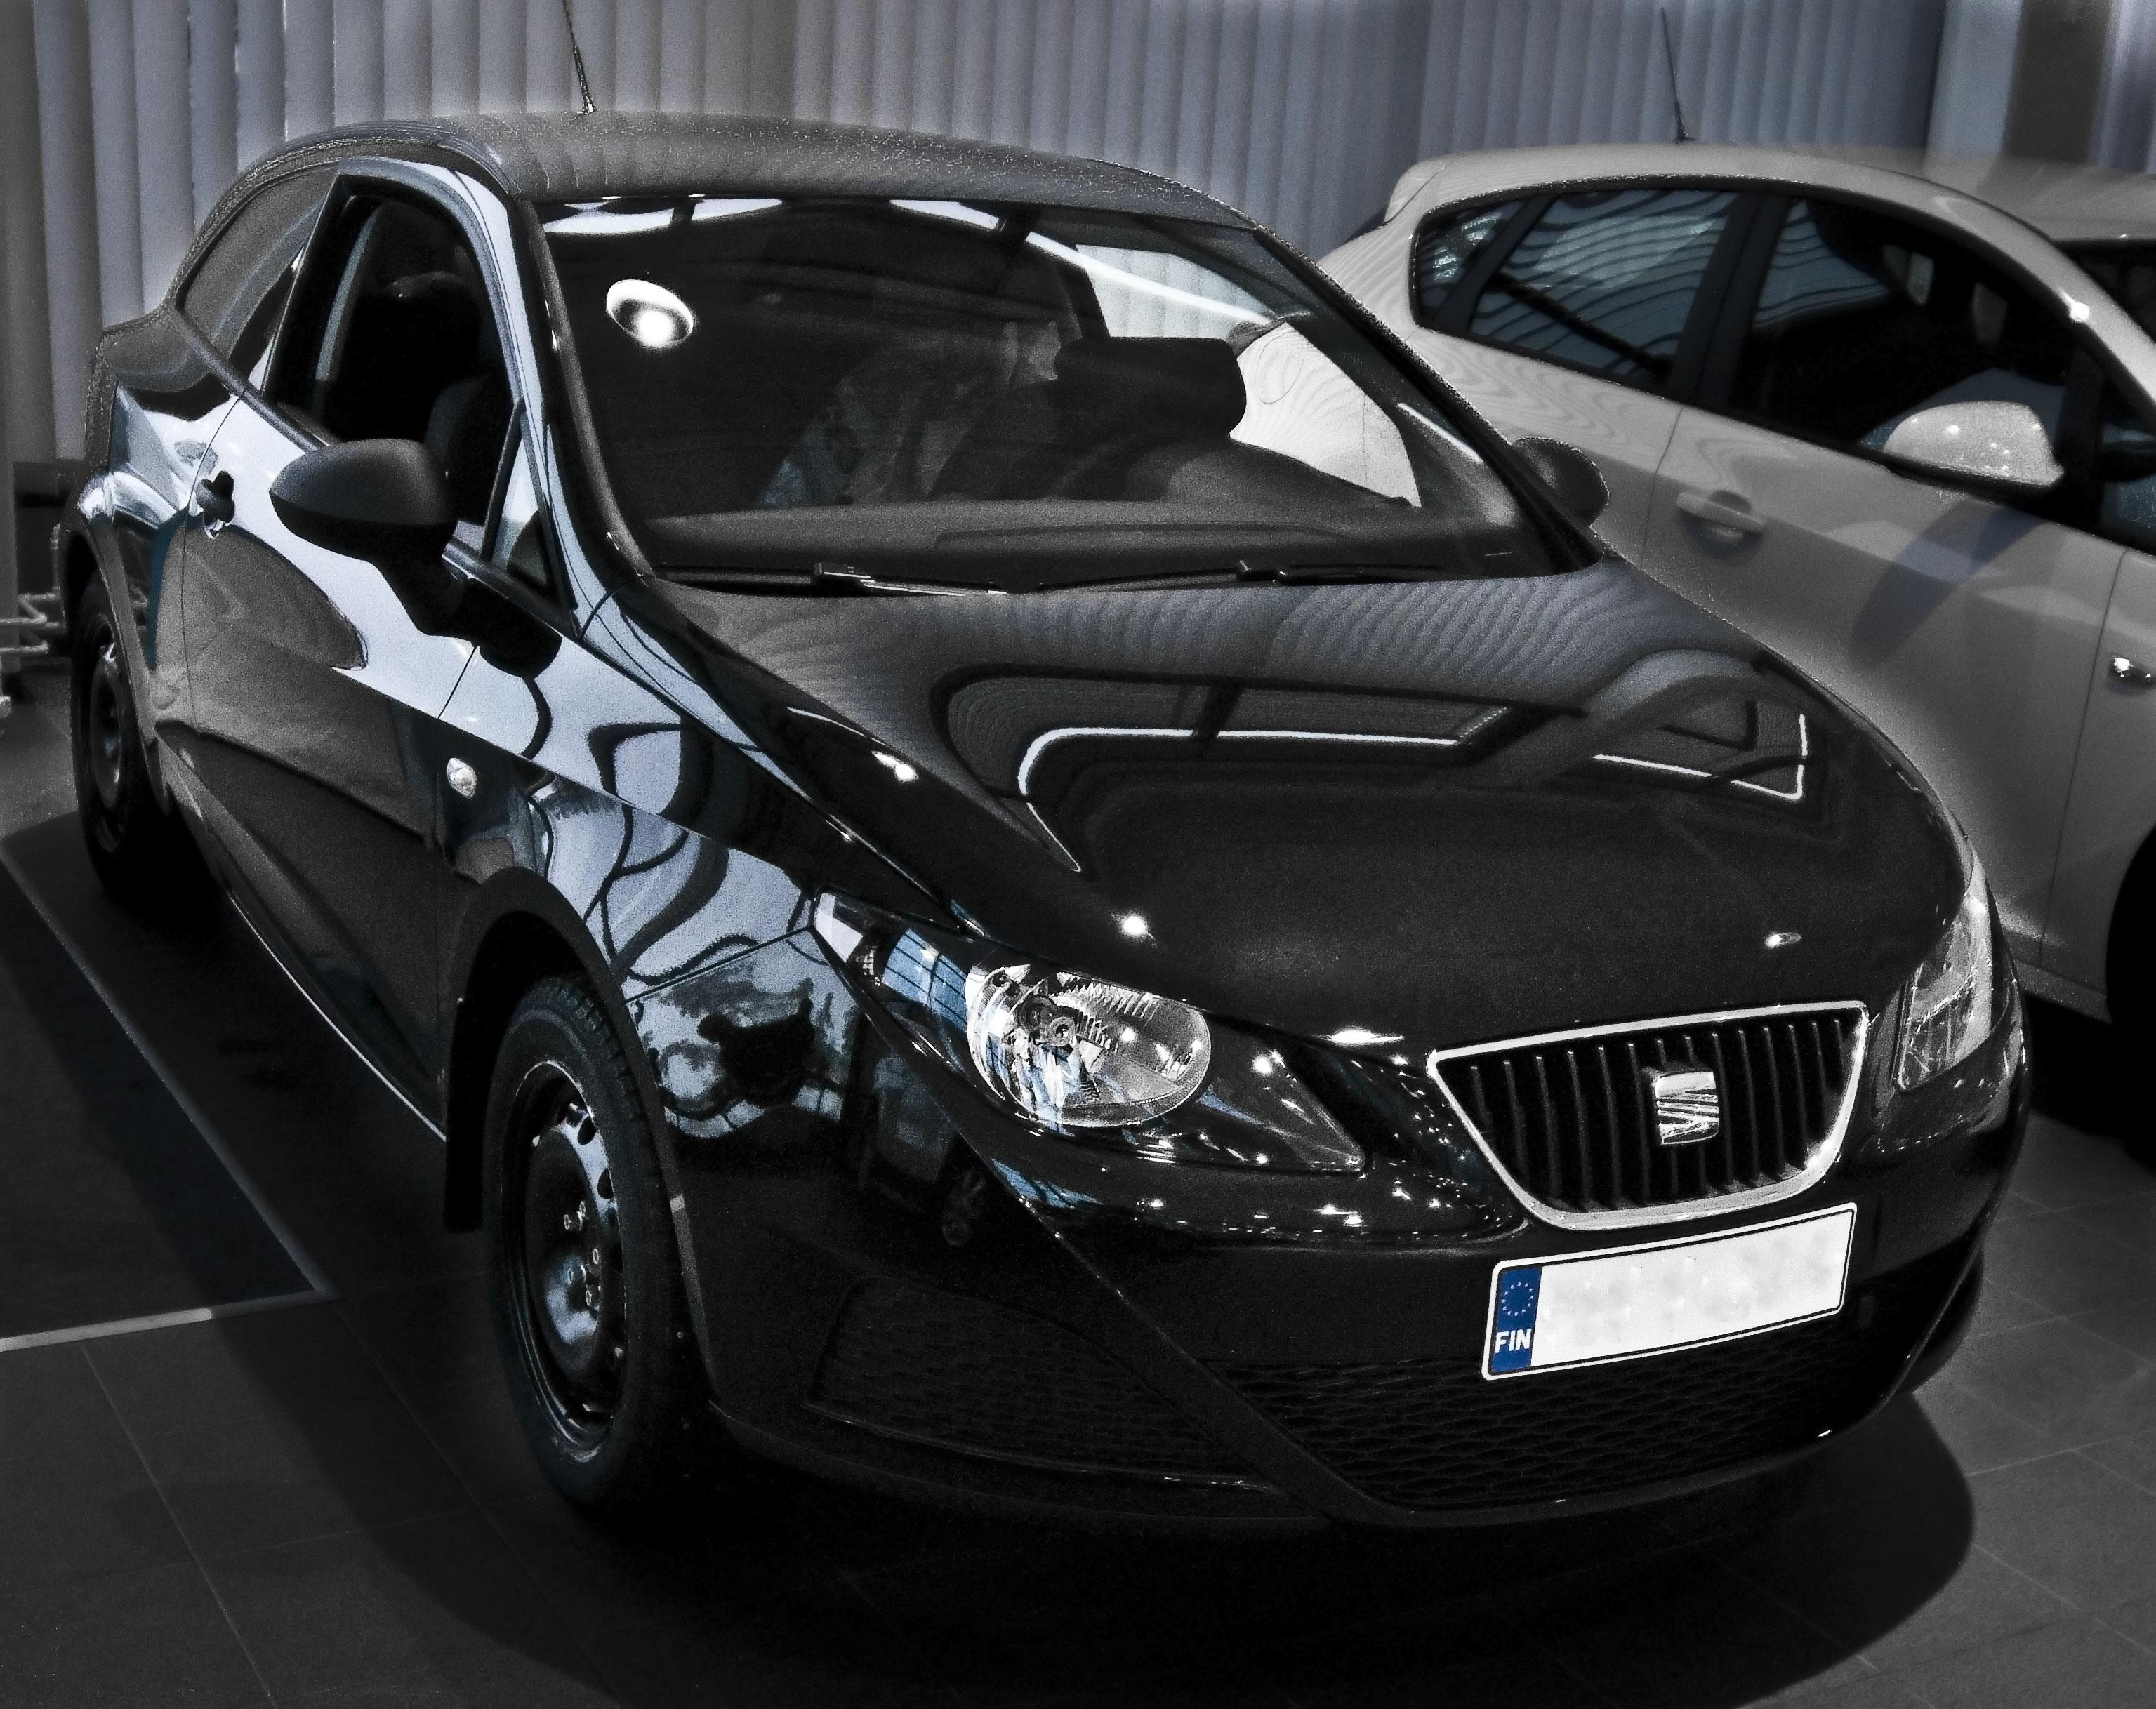 jone80 2011 seat ibiza specs photos modification info at cardomain. Black Bedroom Furniture Sets. Home Design Ideas